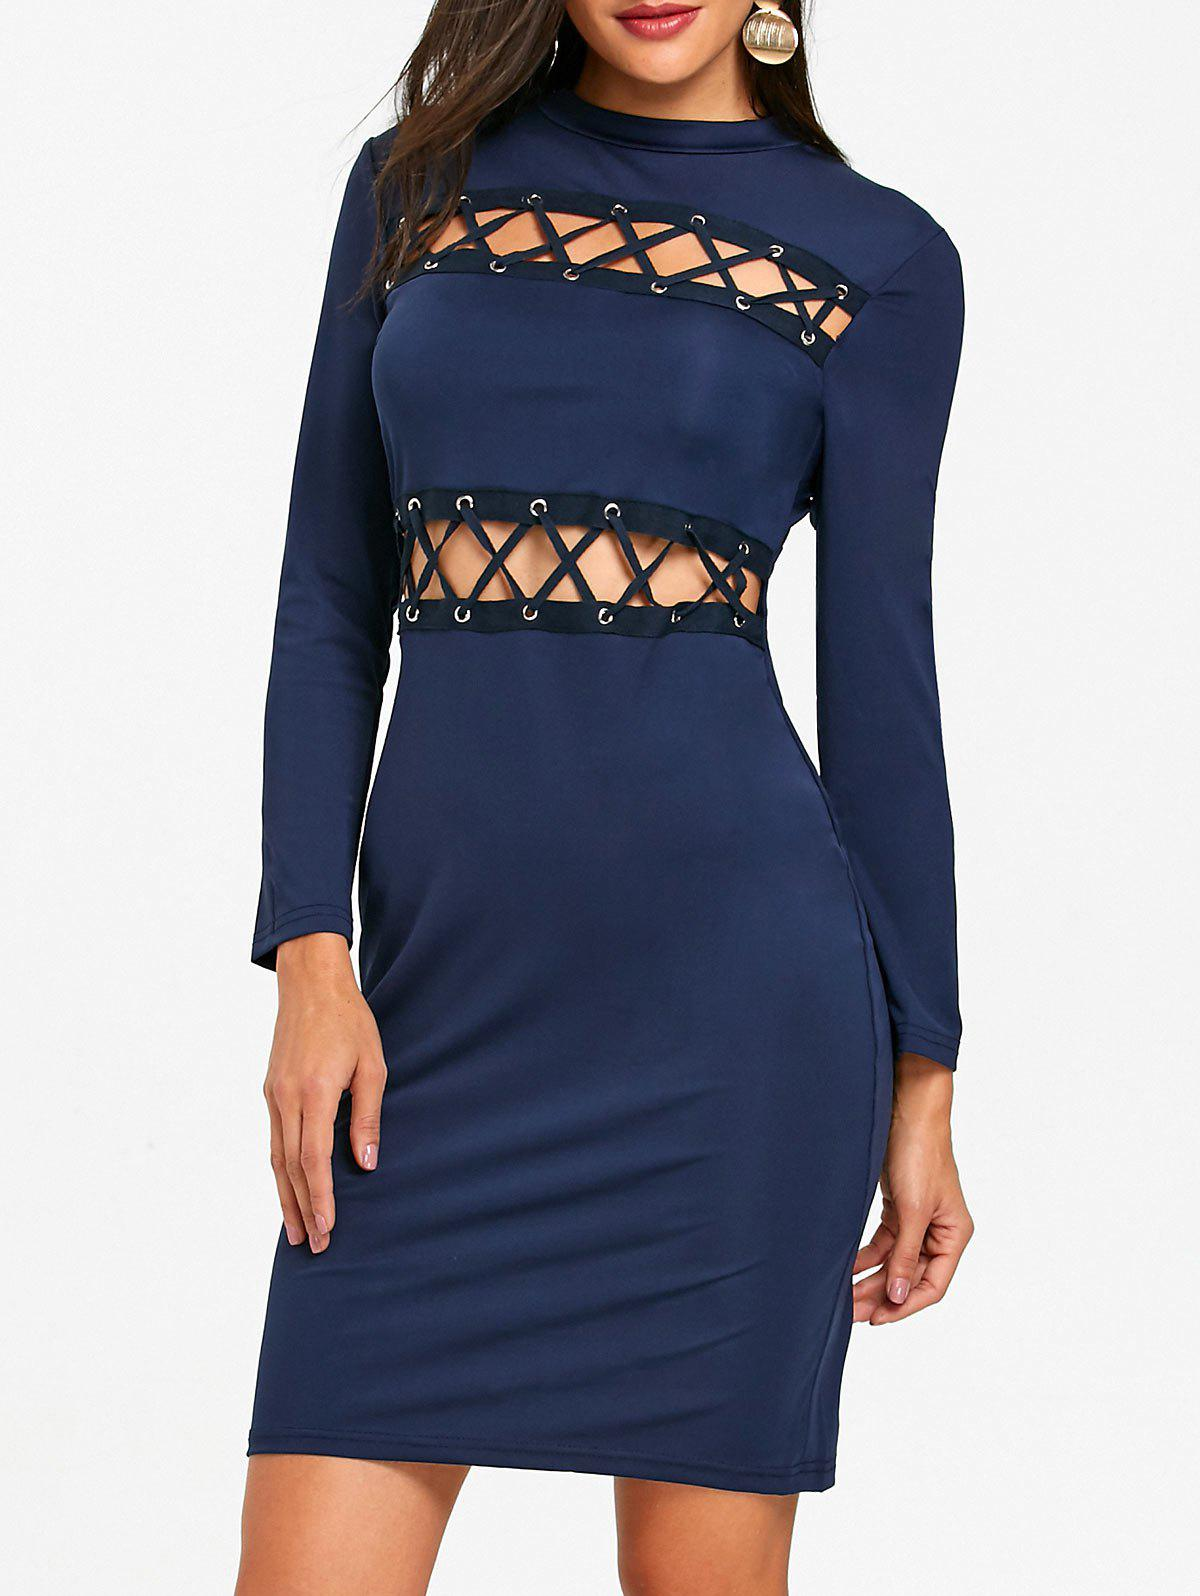 New Hollow Out Lace Up Tight Club Dress